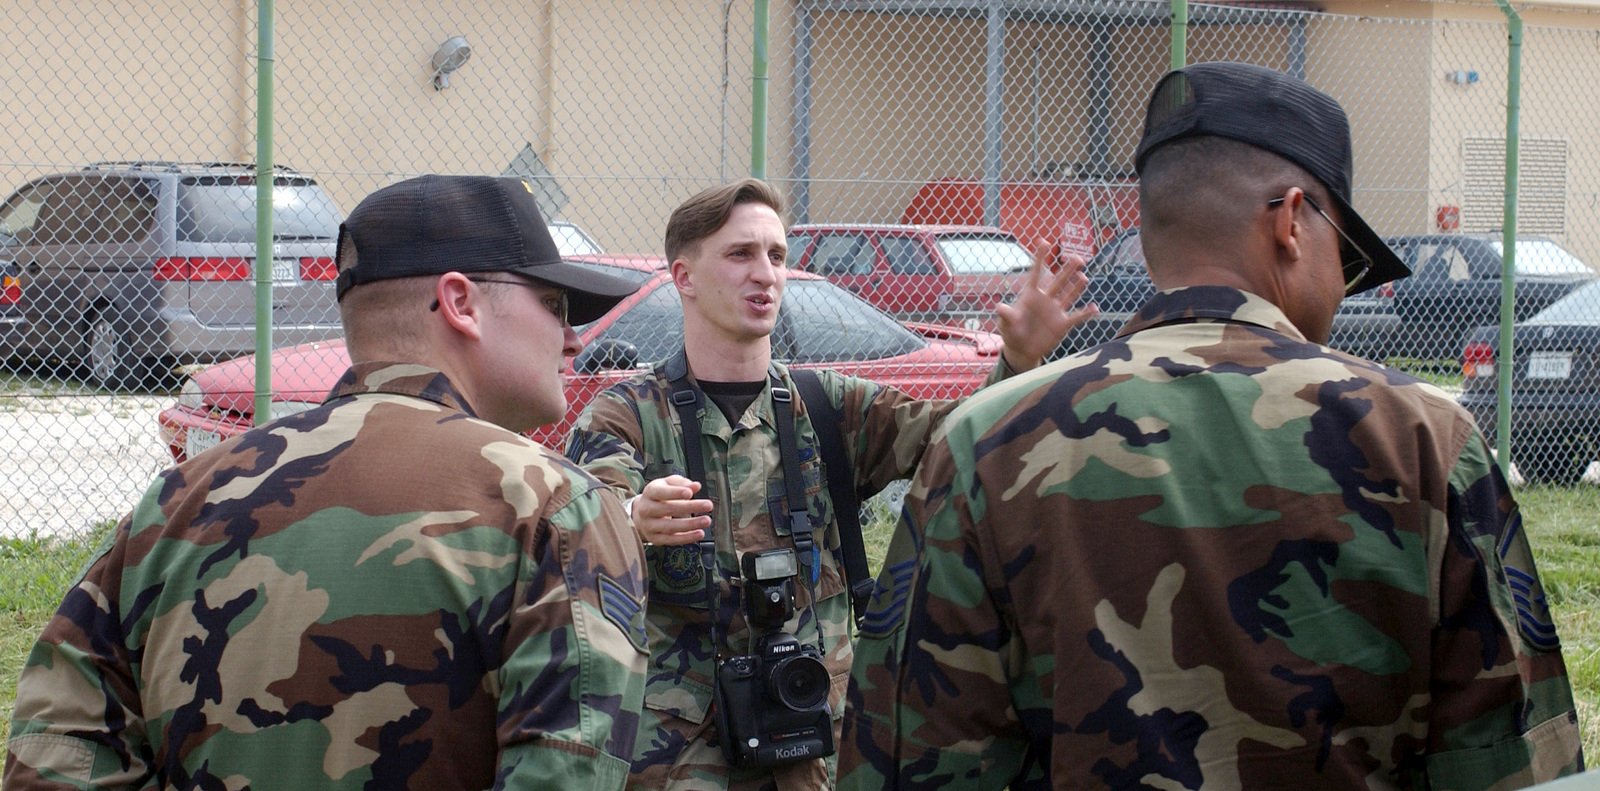 US Air Force (USAF) SENIOR AIRMAN (SRA) Edward Braly (background), a Still Photographer assigned to the 31st Communications Squadron (SC), prepares to document a photographic assignment at Aviano Air Base (AB), Italy